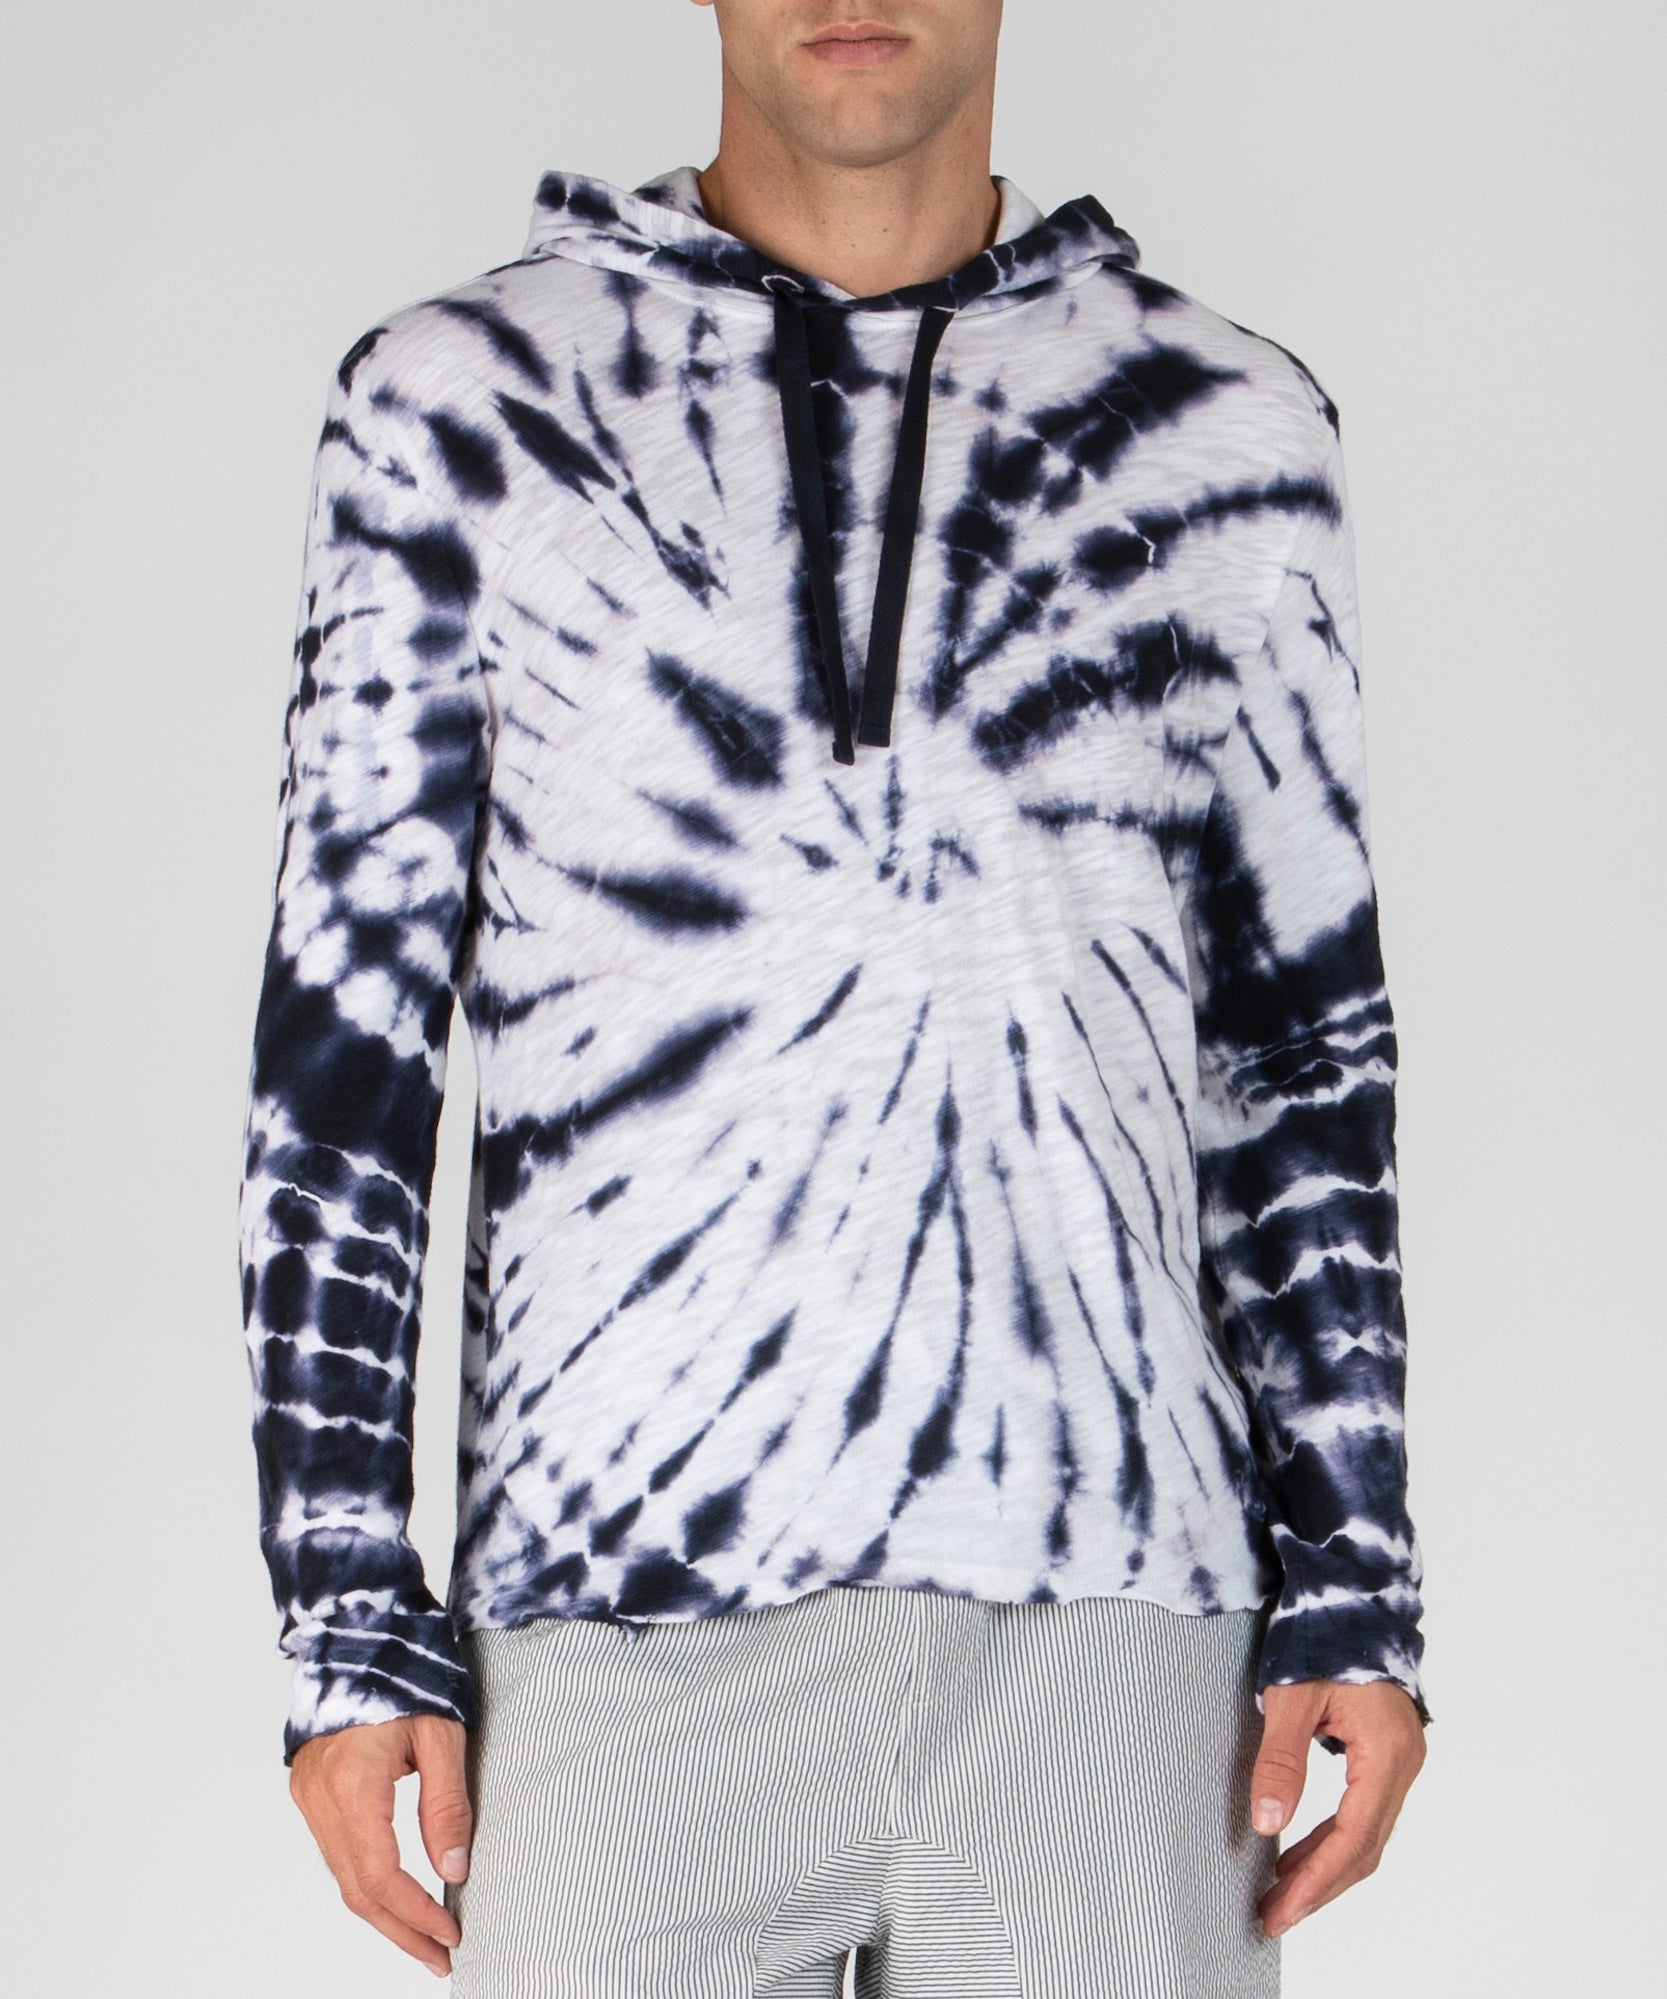 Dark Navy Tie Dye Slub Jersey Hoodie - Men's Cotton Long Sleeve Pullover by ATM Anthony Thomas Melillo